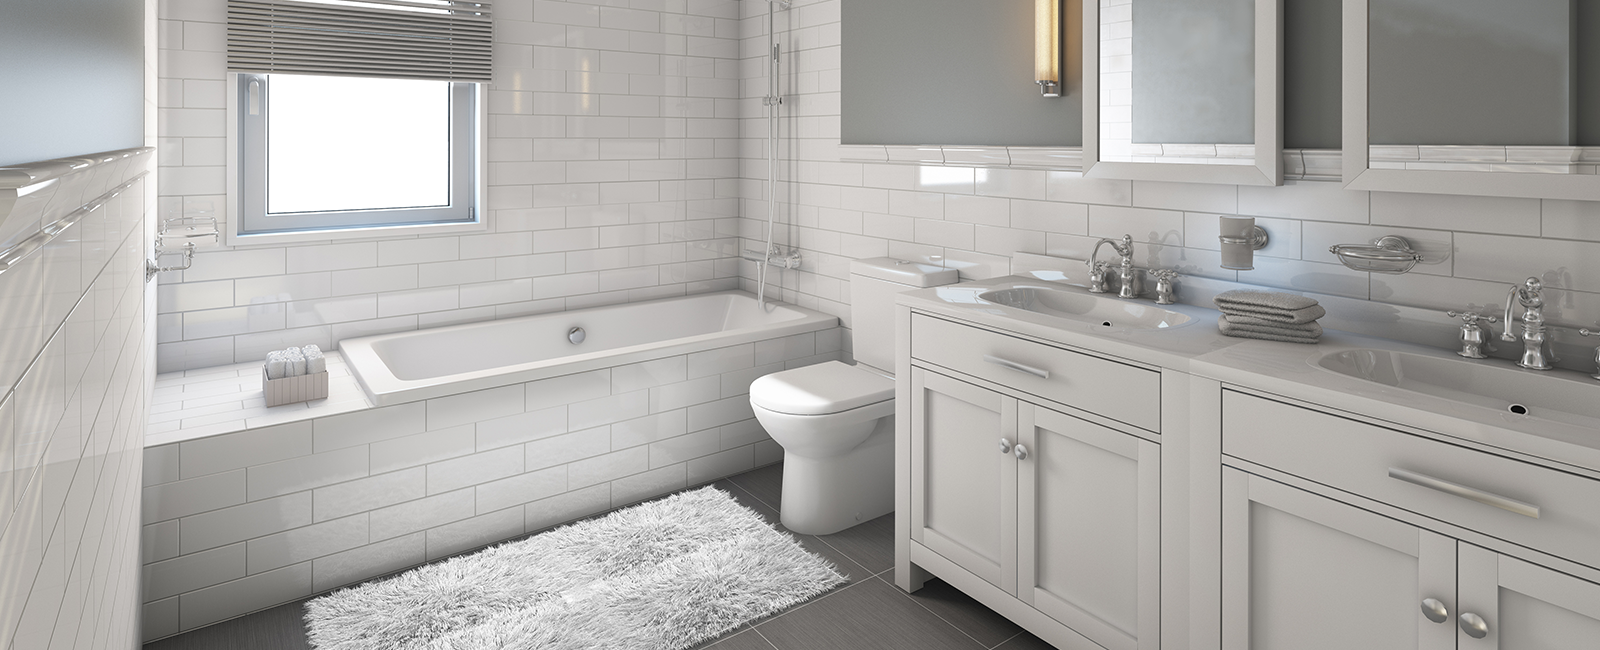 tips for designing an efficient bathroom layout | quickbath